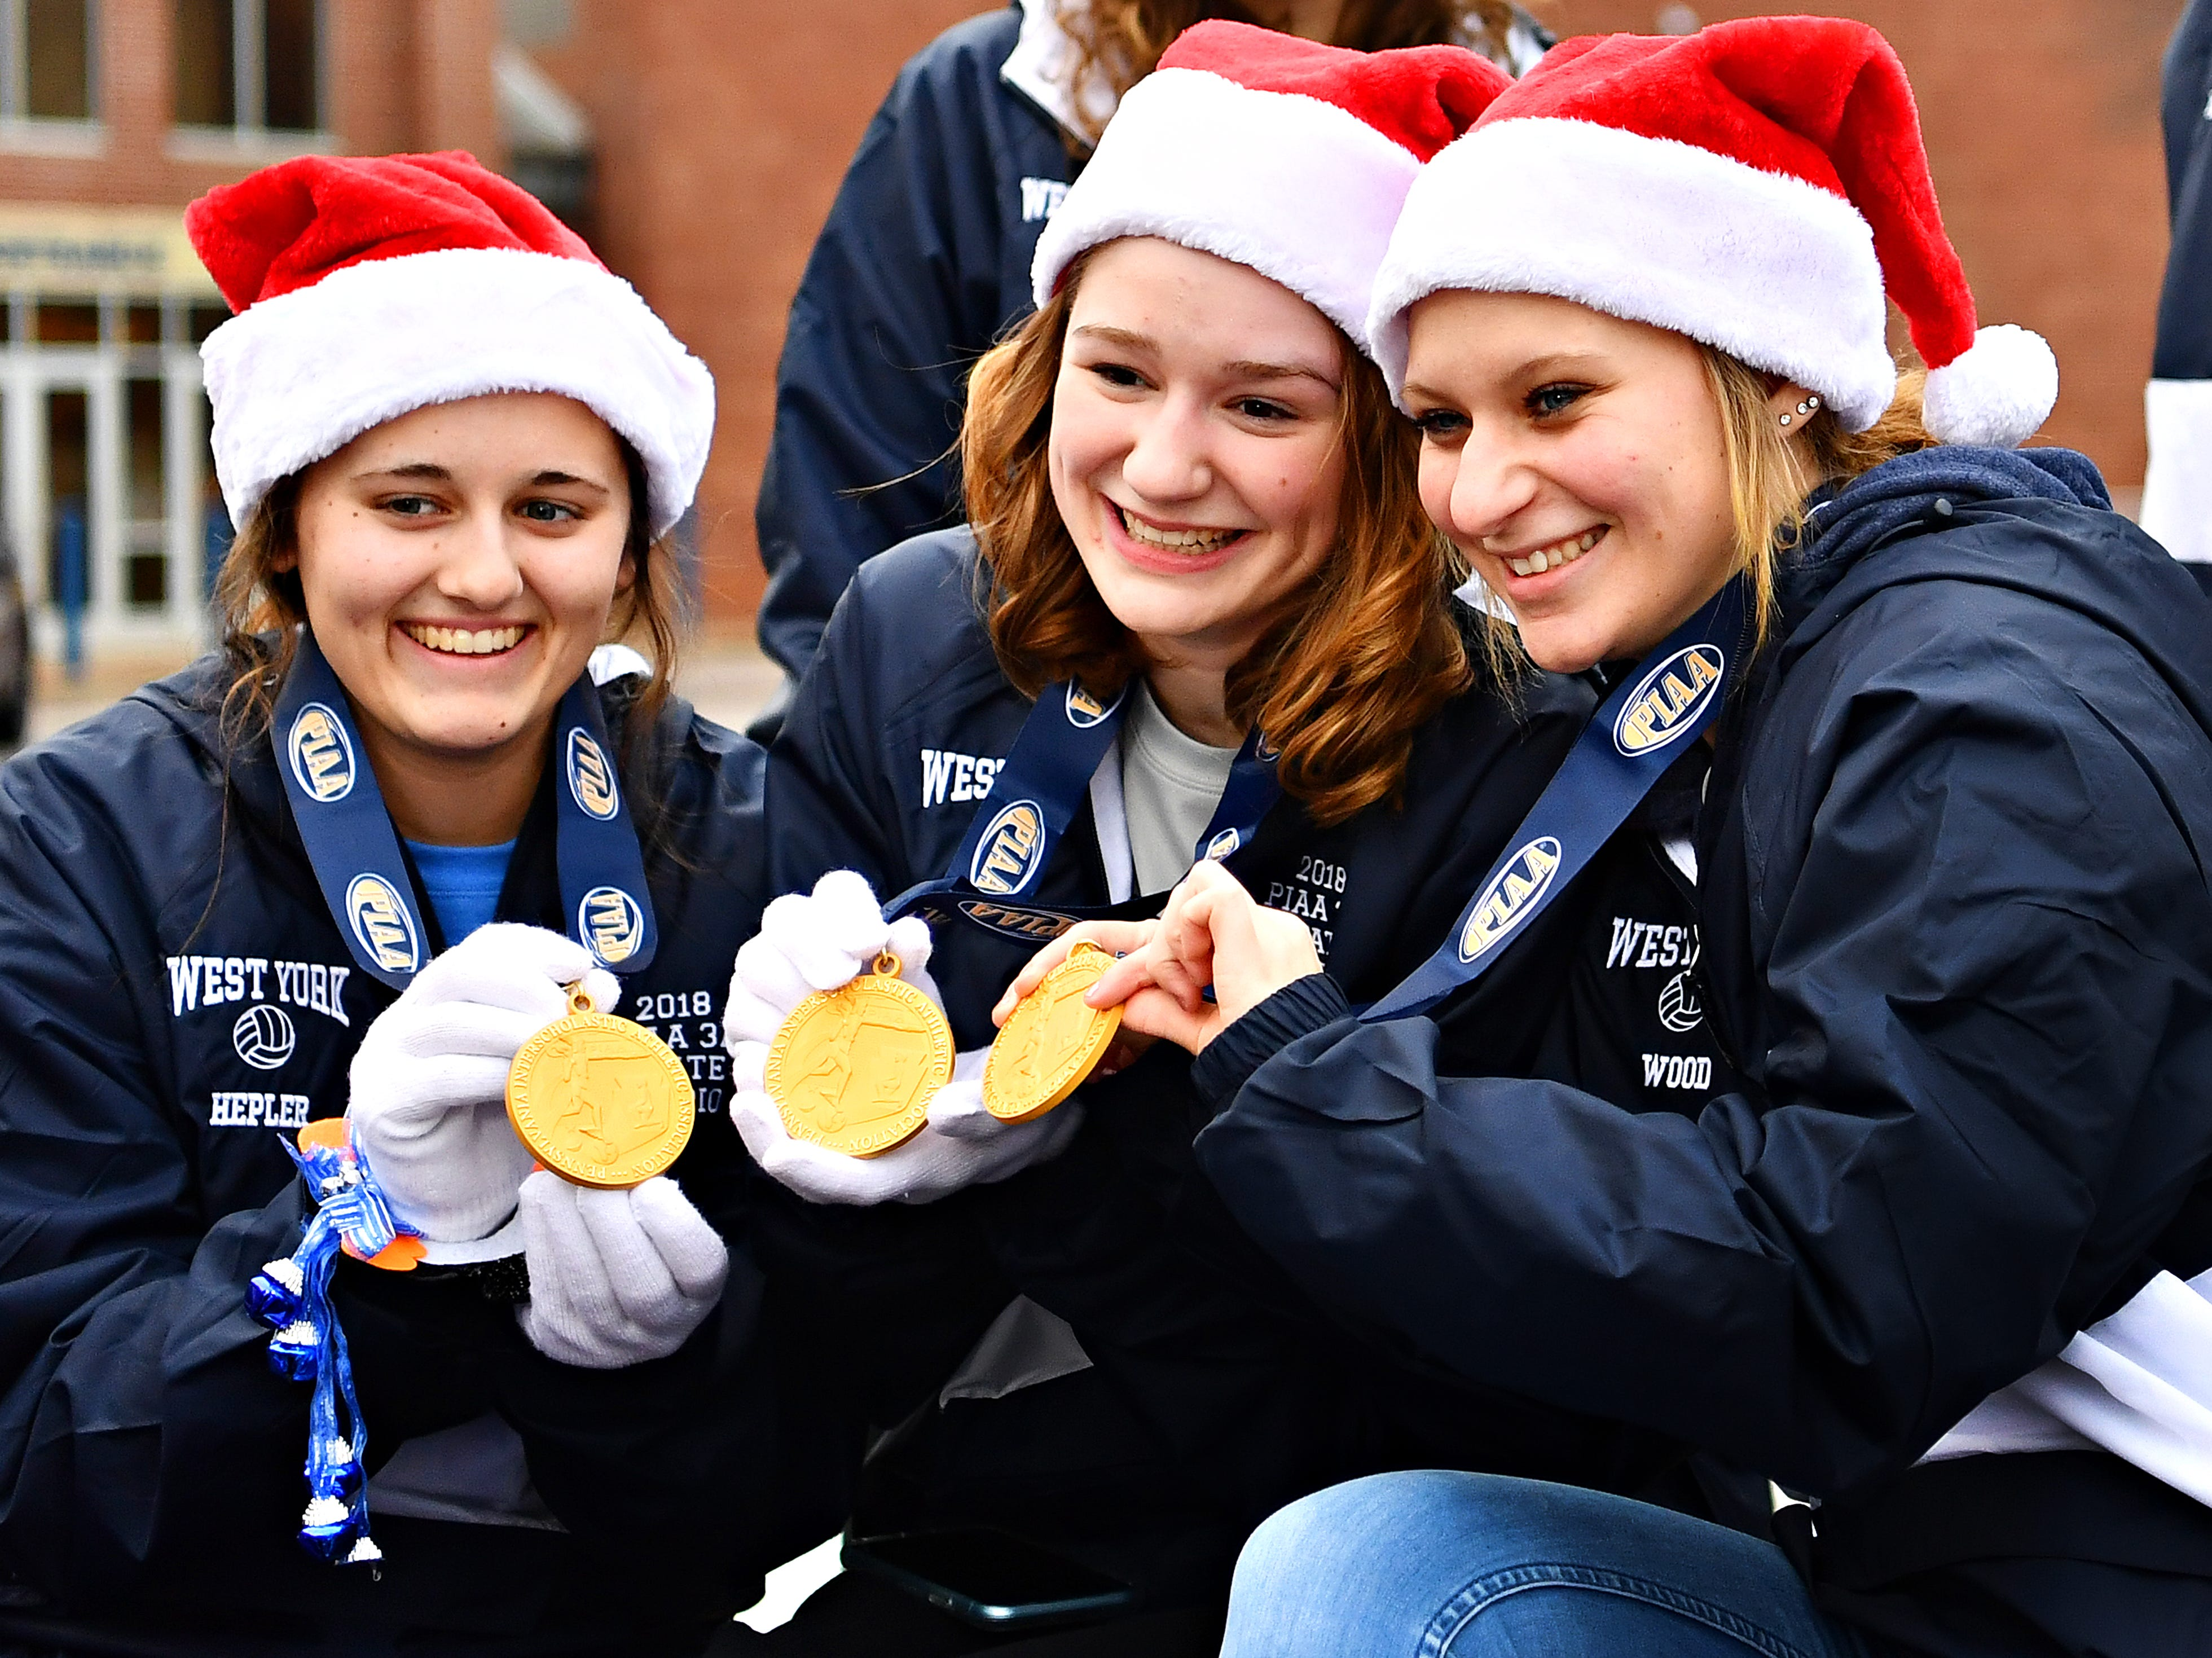 From left, West York's Kambrie Hepler, Julia Rill and Lizzie Wood show their championship medals to media prior to the the parade honoring the 2018 PIAA 3-A State Champion Lady Bulldogs Volleyball team at West York Area High School in West Manchester Township, Friday, Nov. 30, 2018. Dawn J. Sagert photo